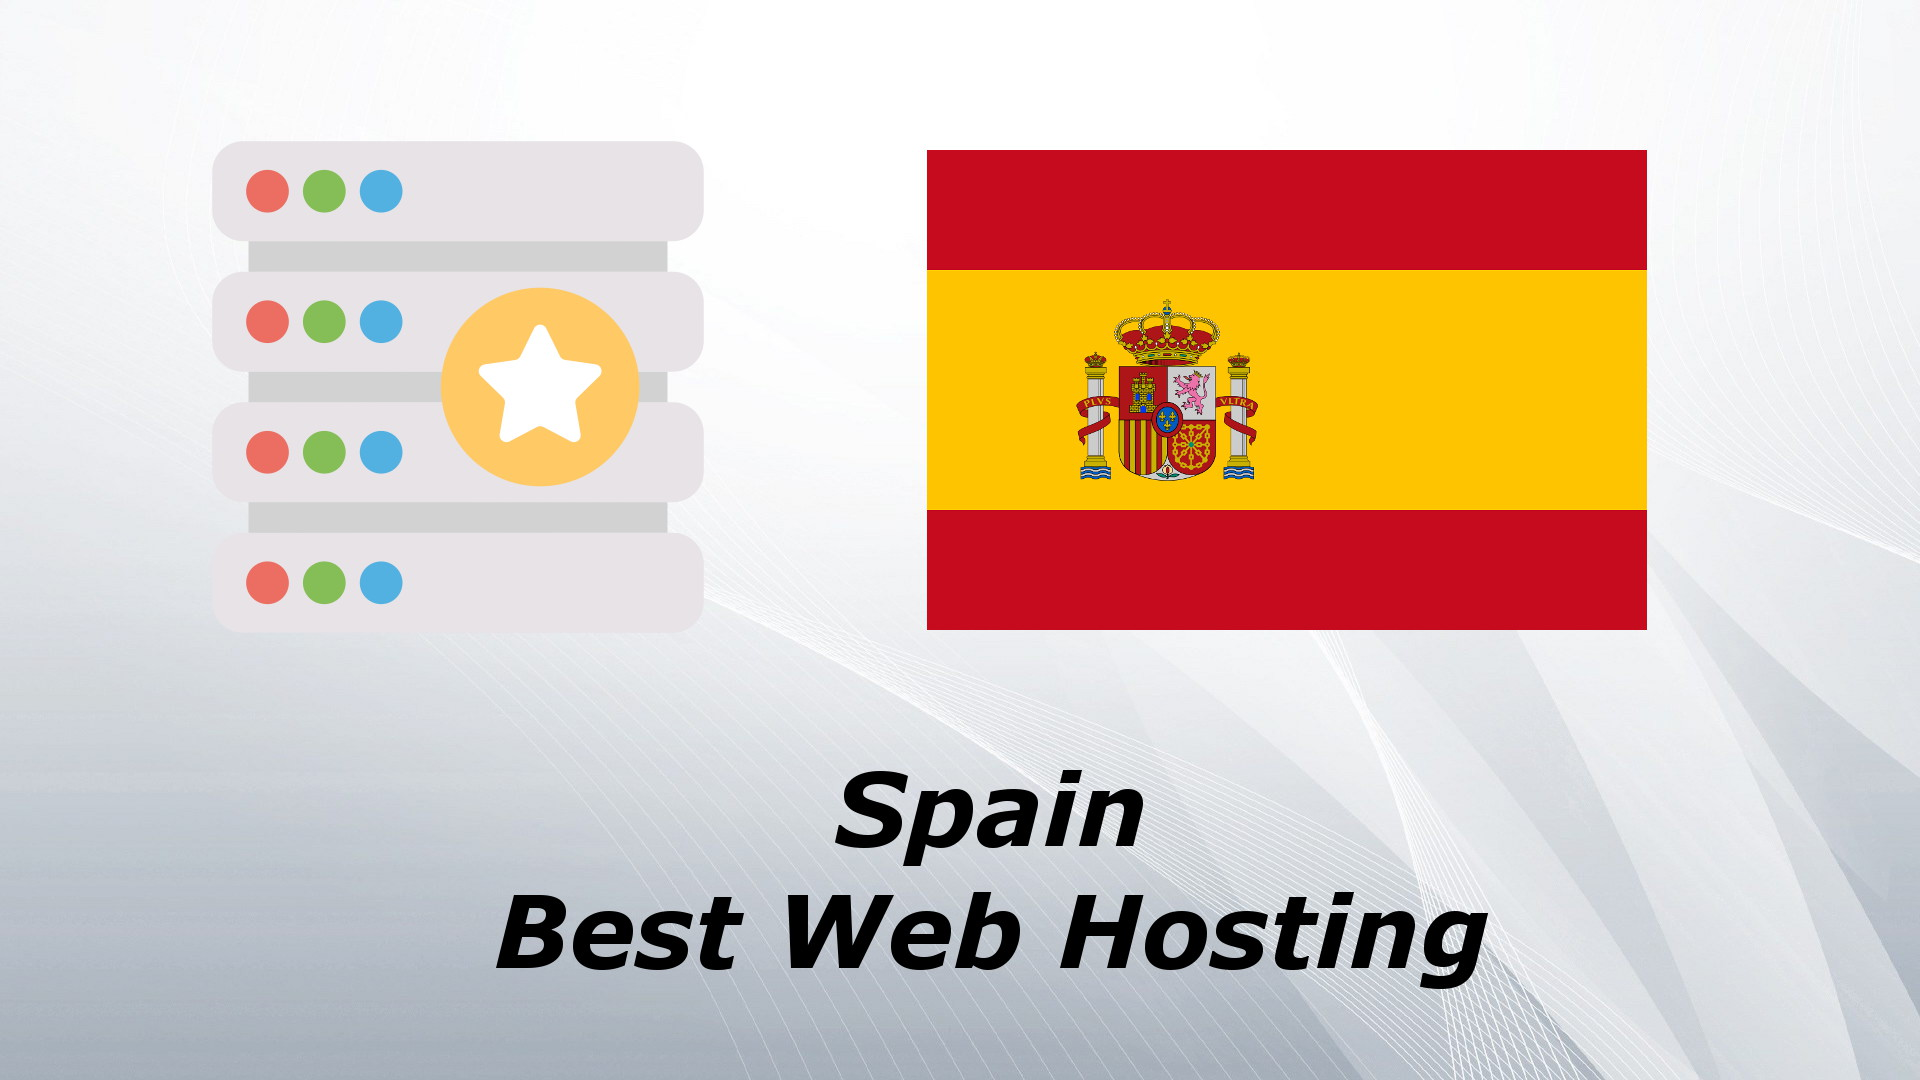 Spain Best Web Hosting